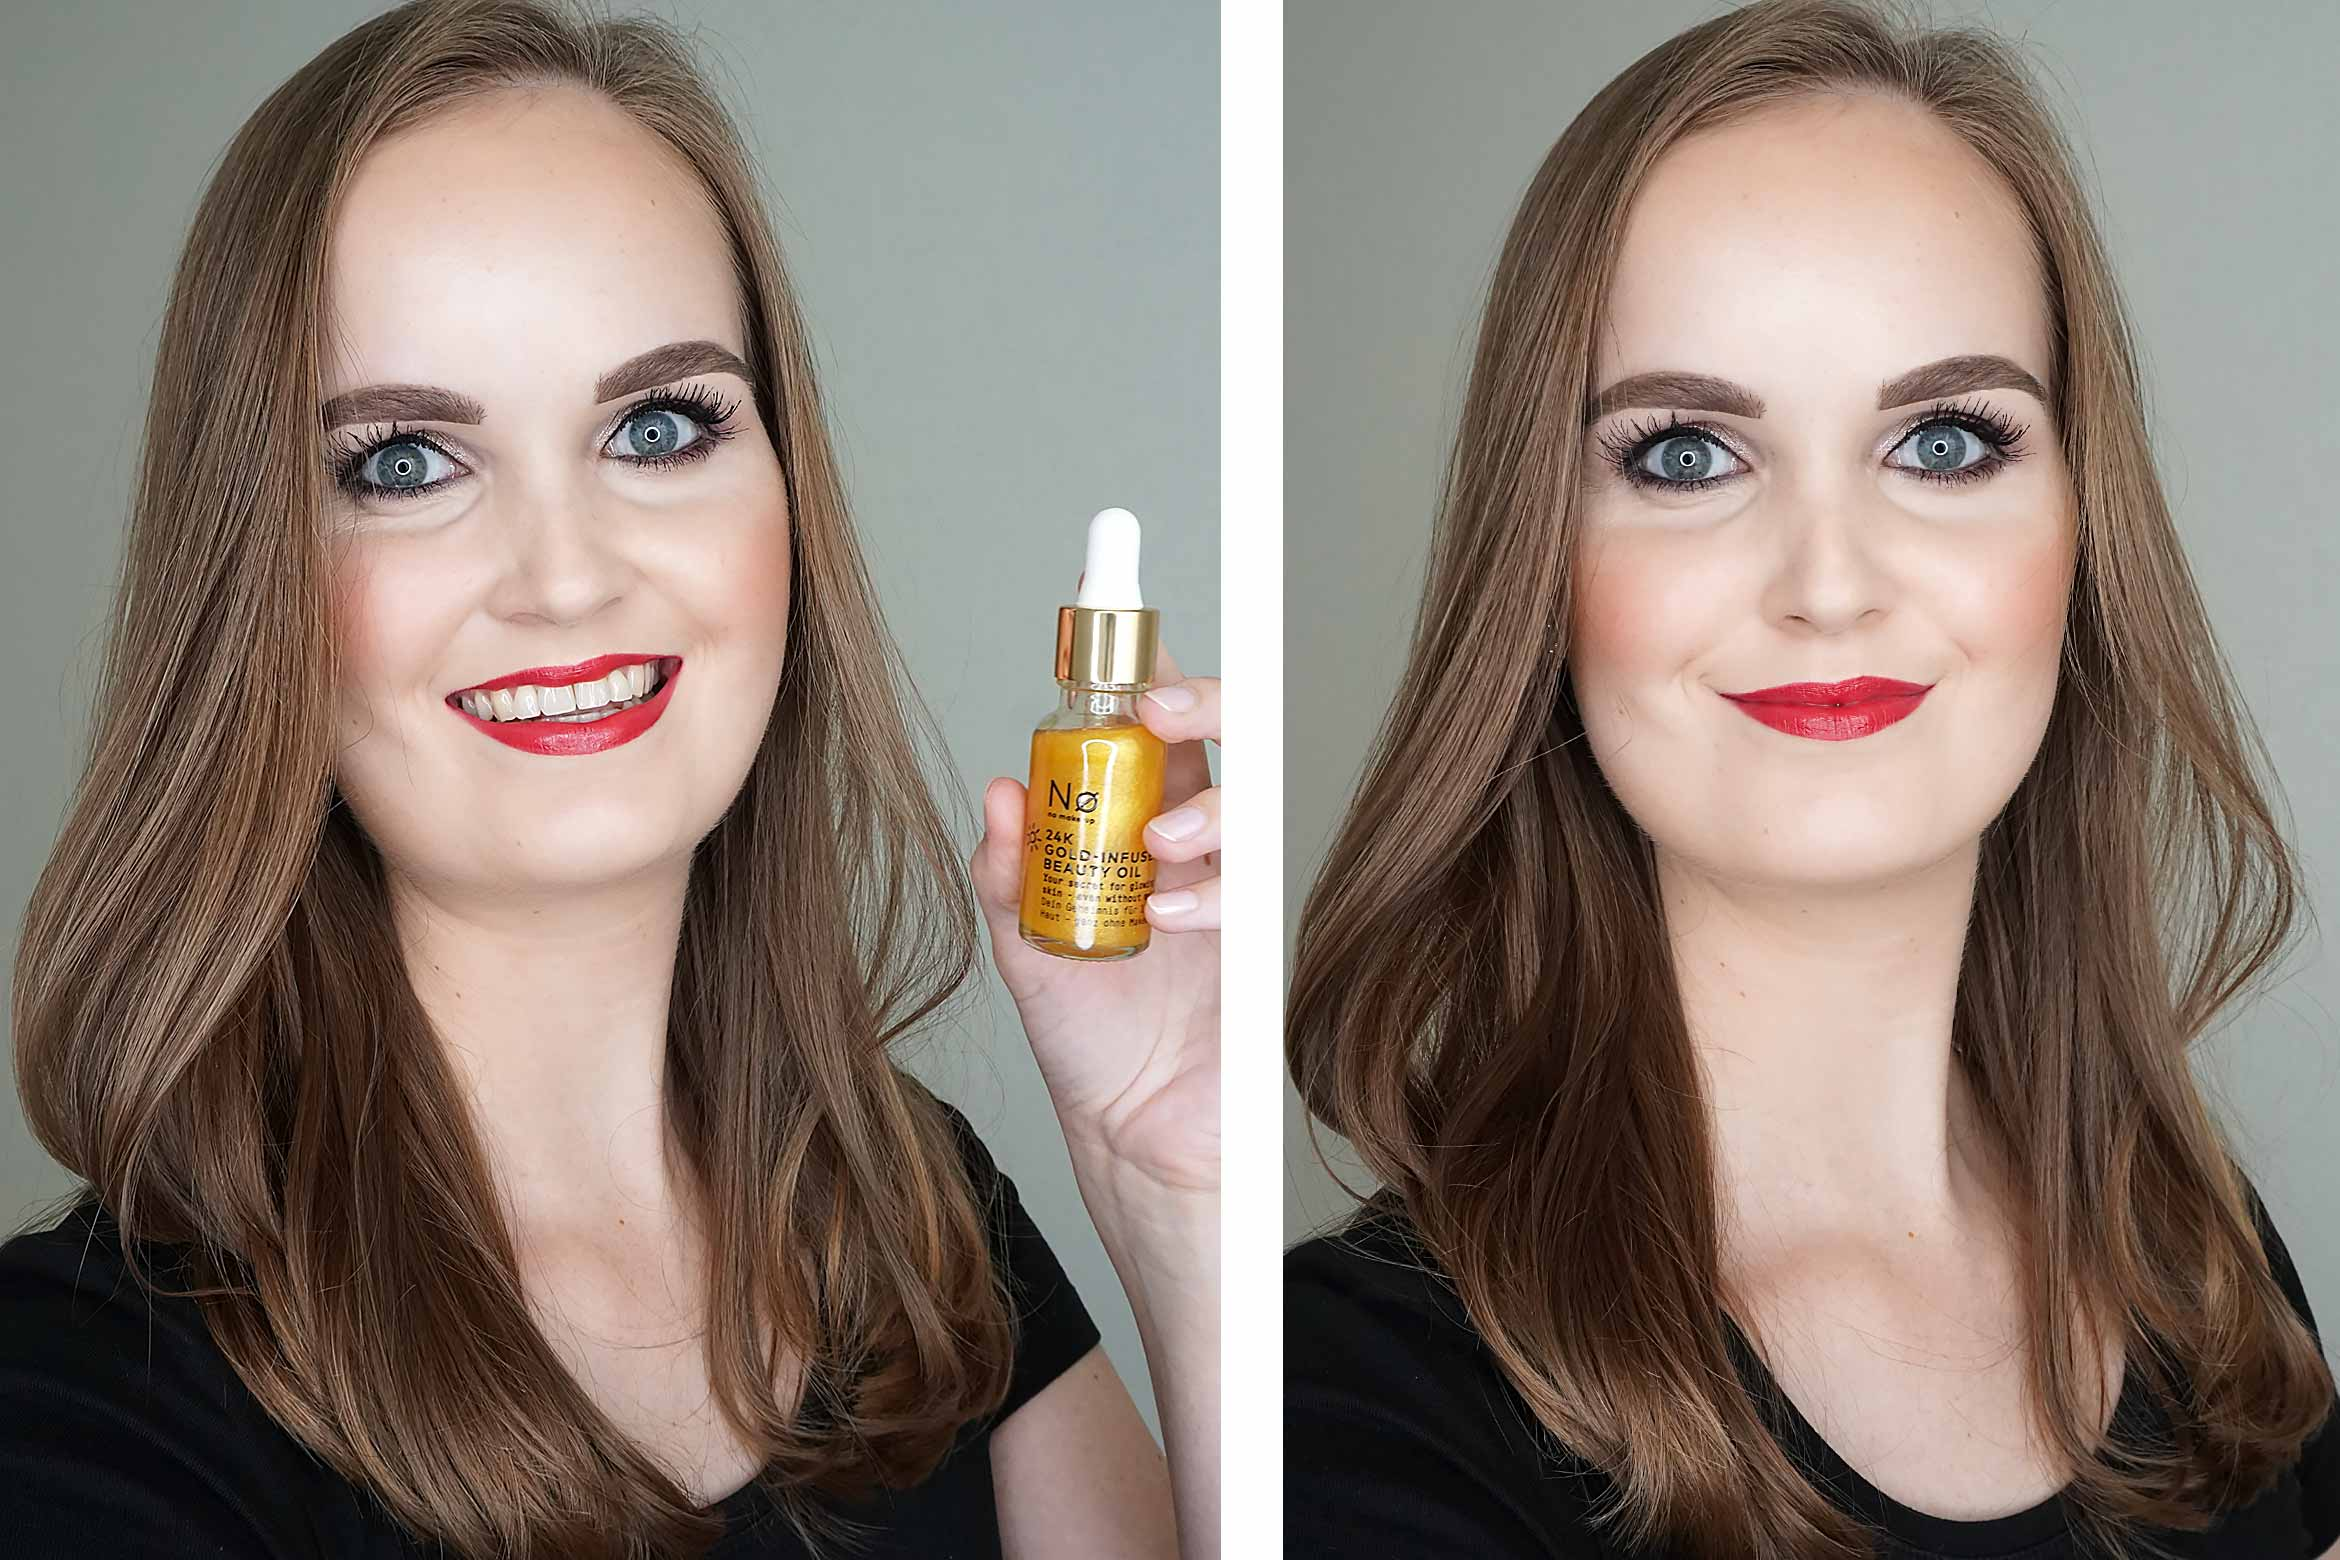 no-make-up-24k-gold-infused-beauty-oil-review-look-1